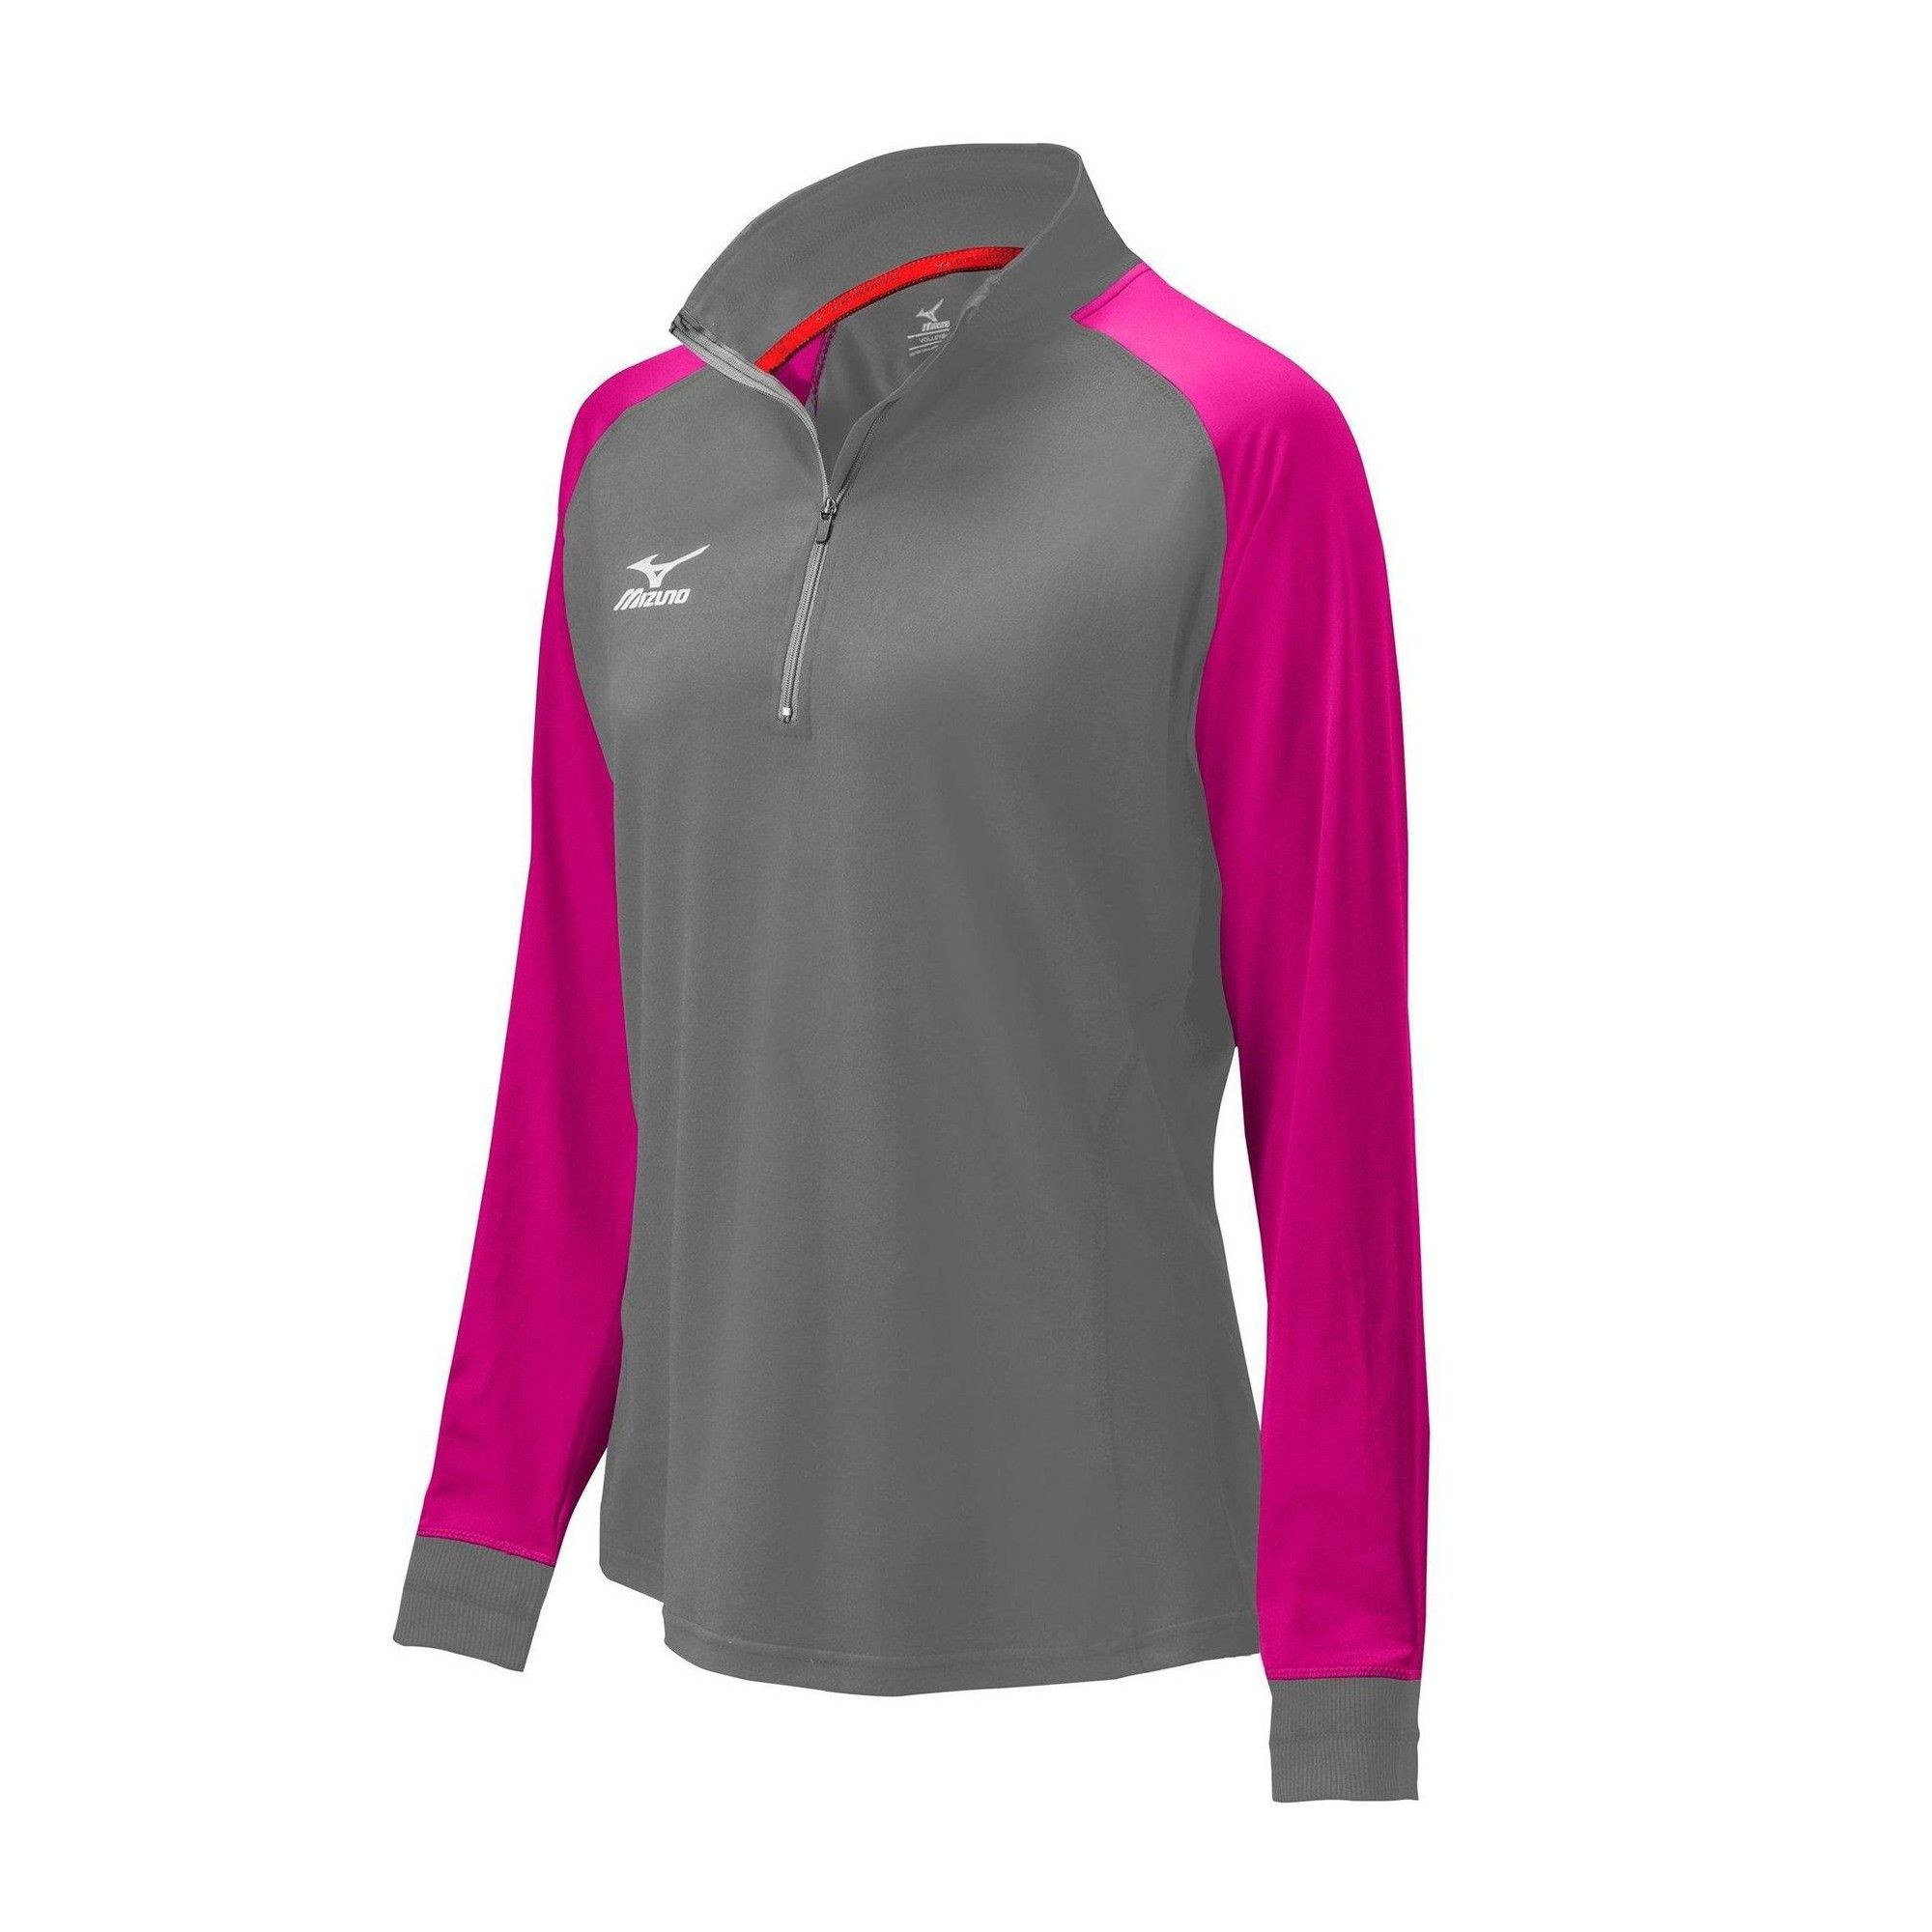 Mizuno Women S Prime 1 2 Zip Jacket Womens Size Extra Small In Color Charcoal Shocking Pink 921m Products Jackets For Women Volleyball Outfits Jackets